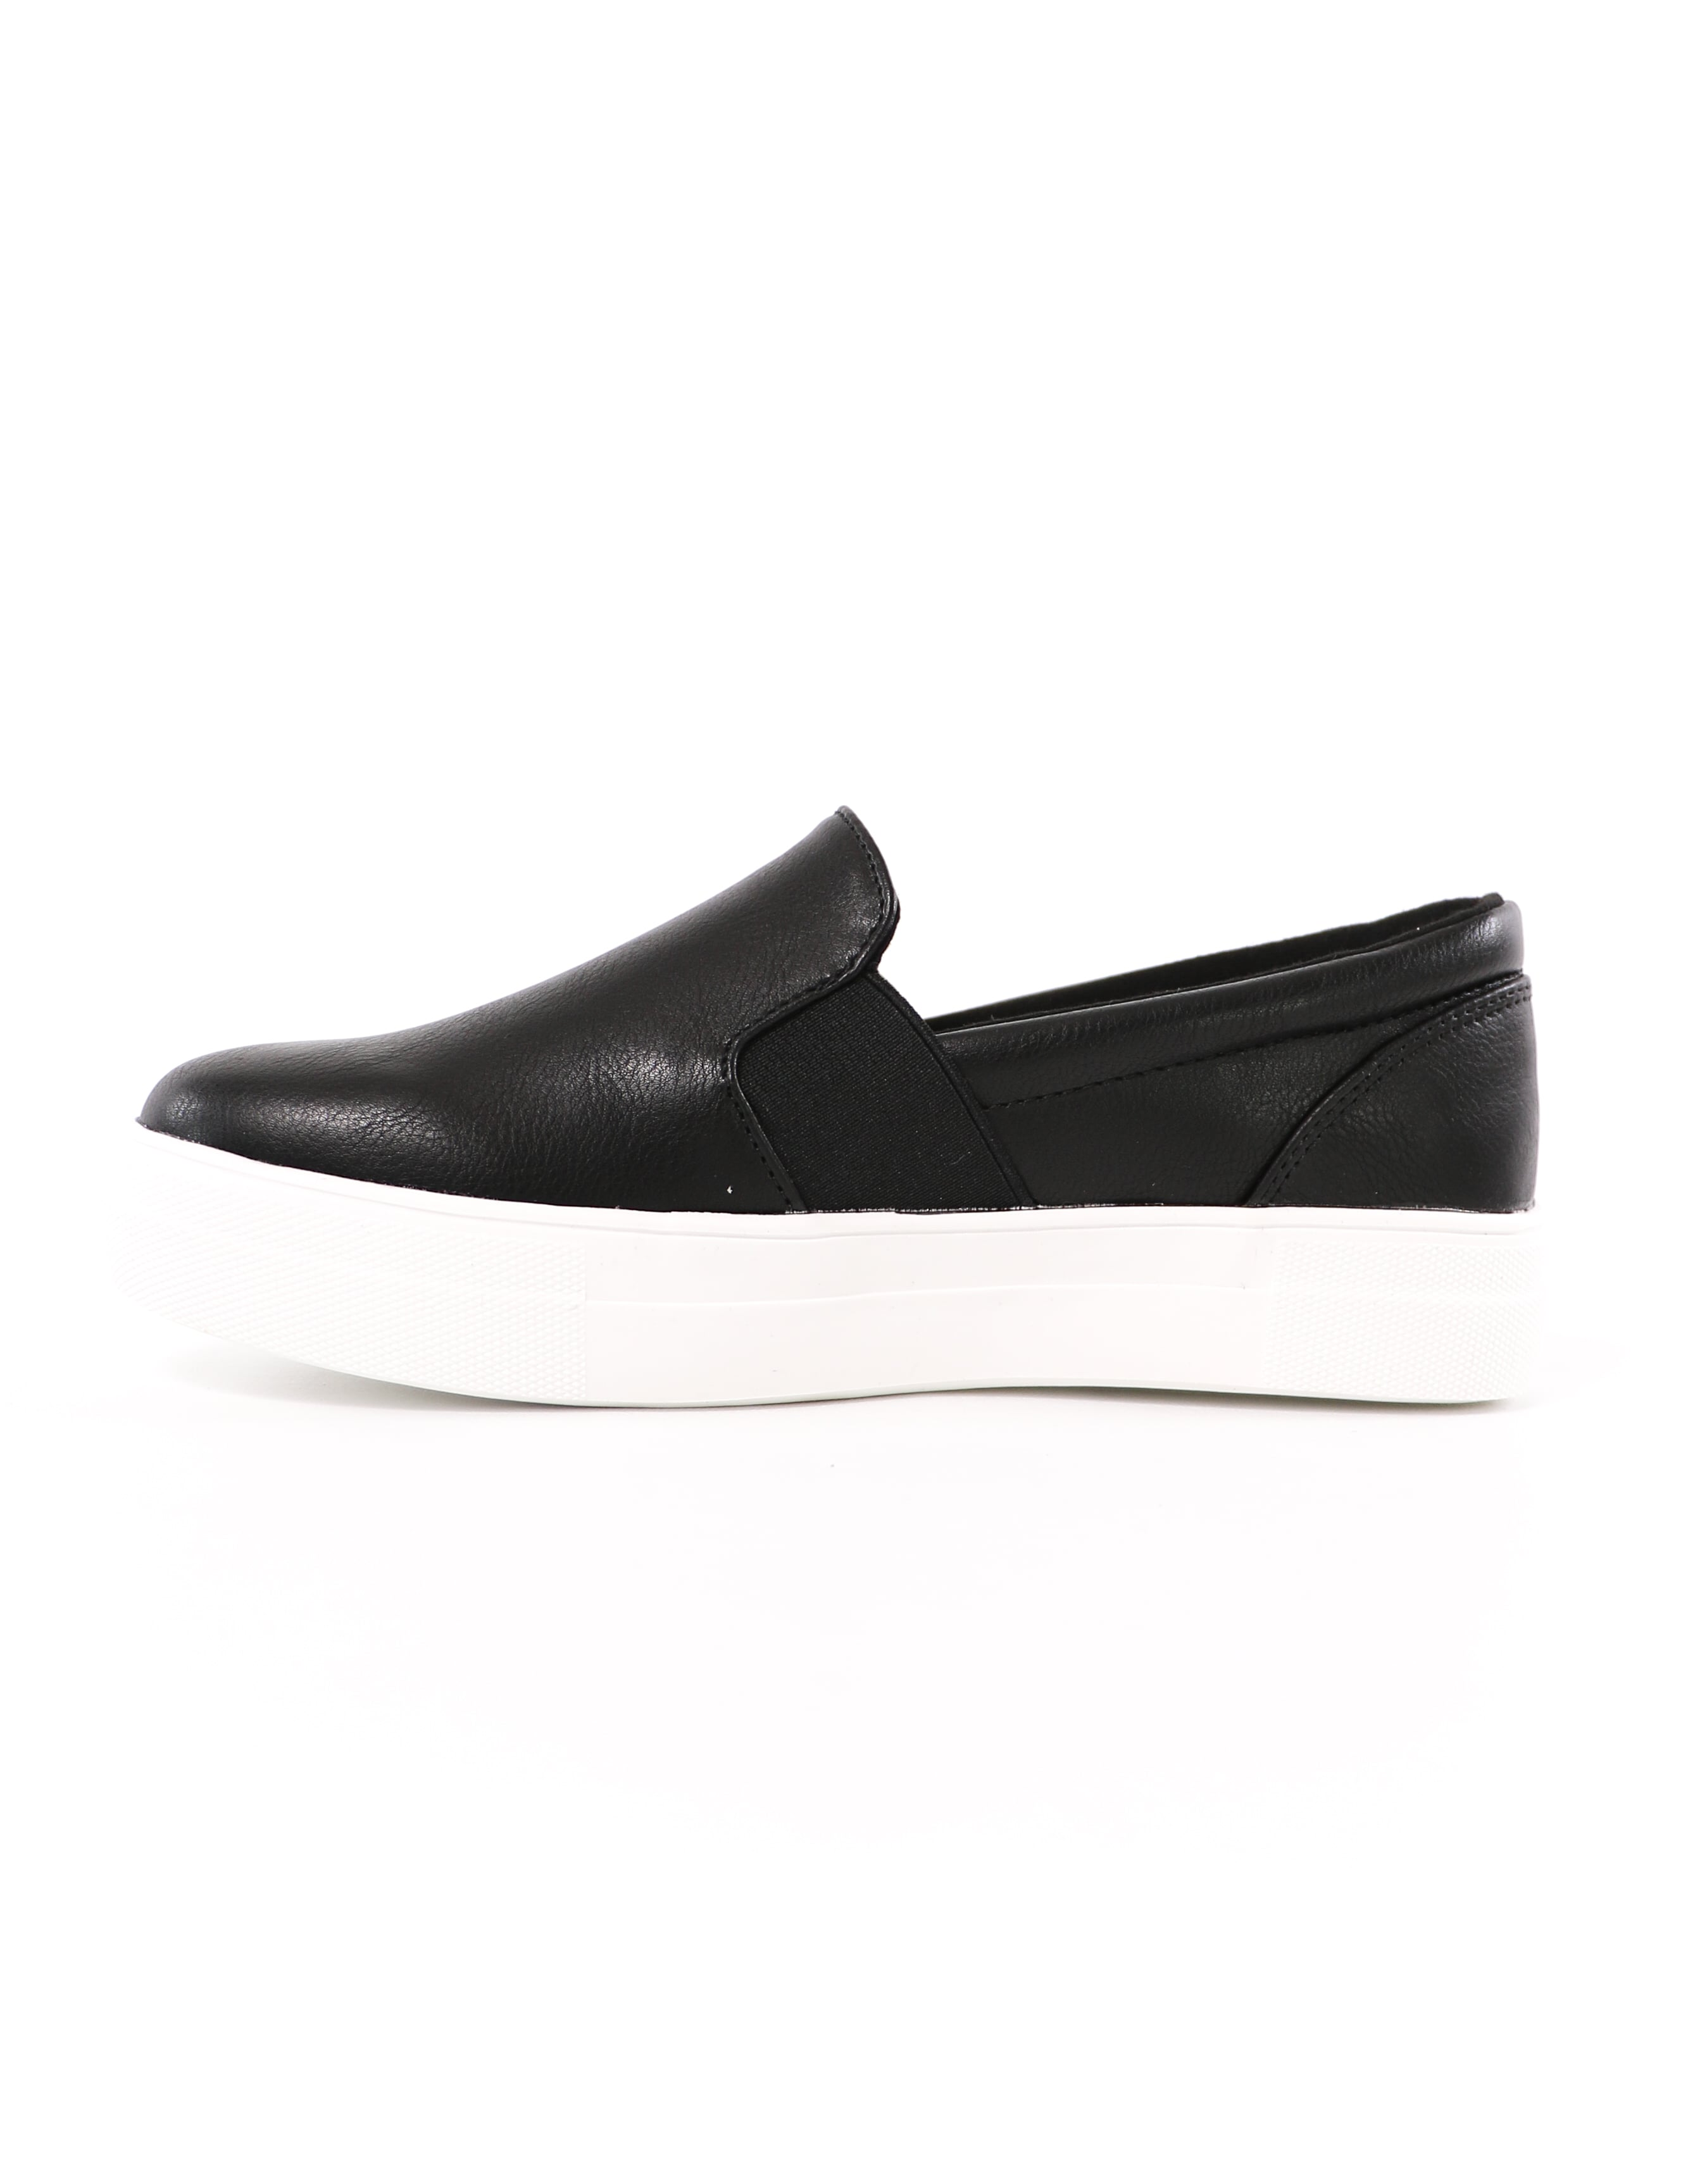 kickin' it sole-o black slip on sneaker - elle bleu shoes